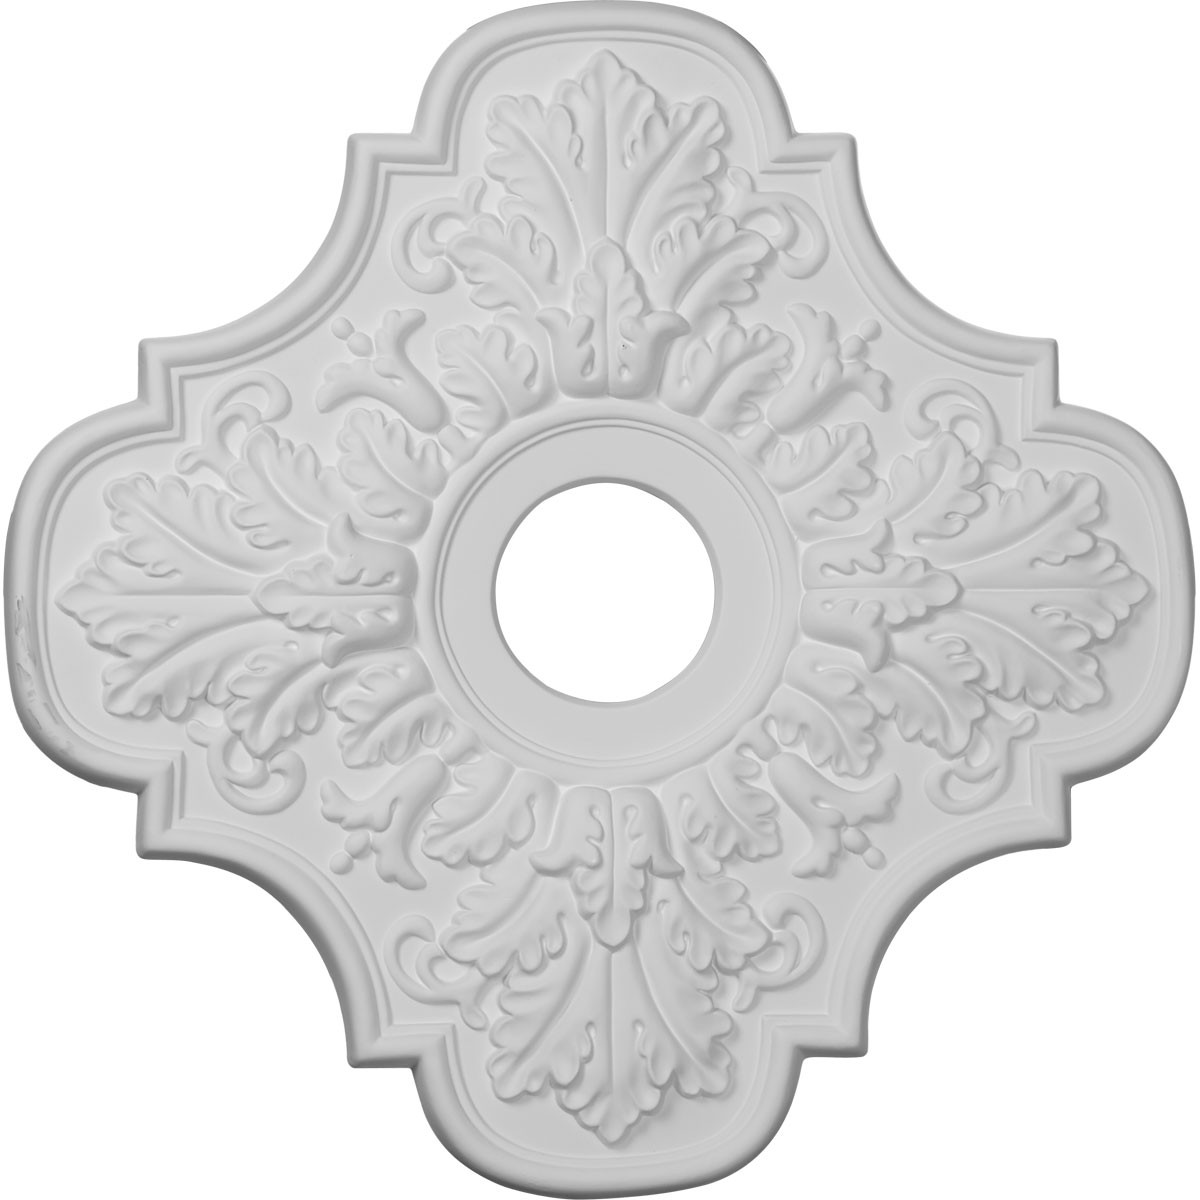 "EM-CM17PE - 17 3/4""OD x 3 1/8""ID x 1""P Peralta Ceiling Medallion (Fits Canopies up to 4 5/8"")"